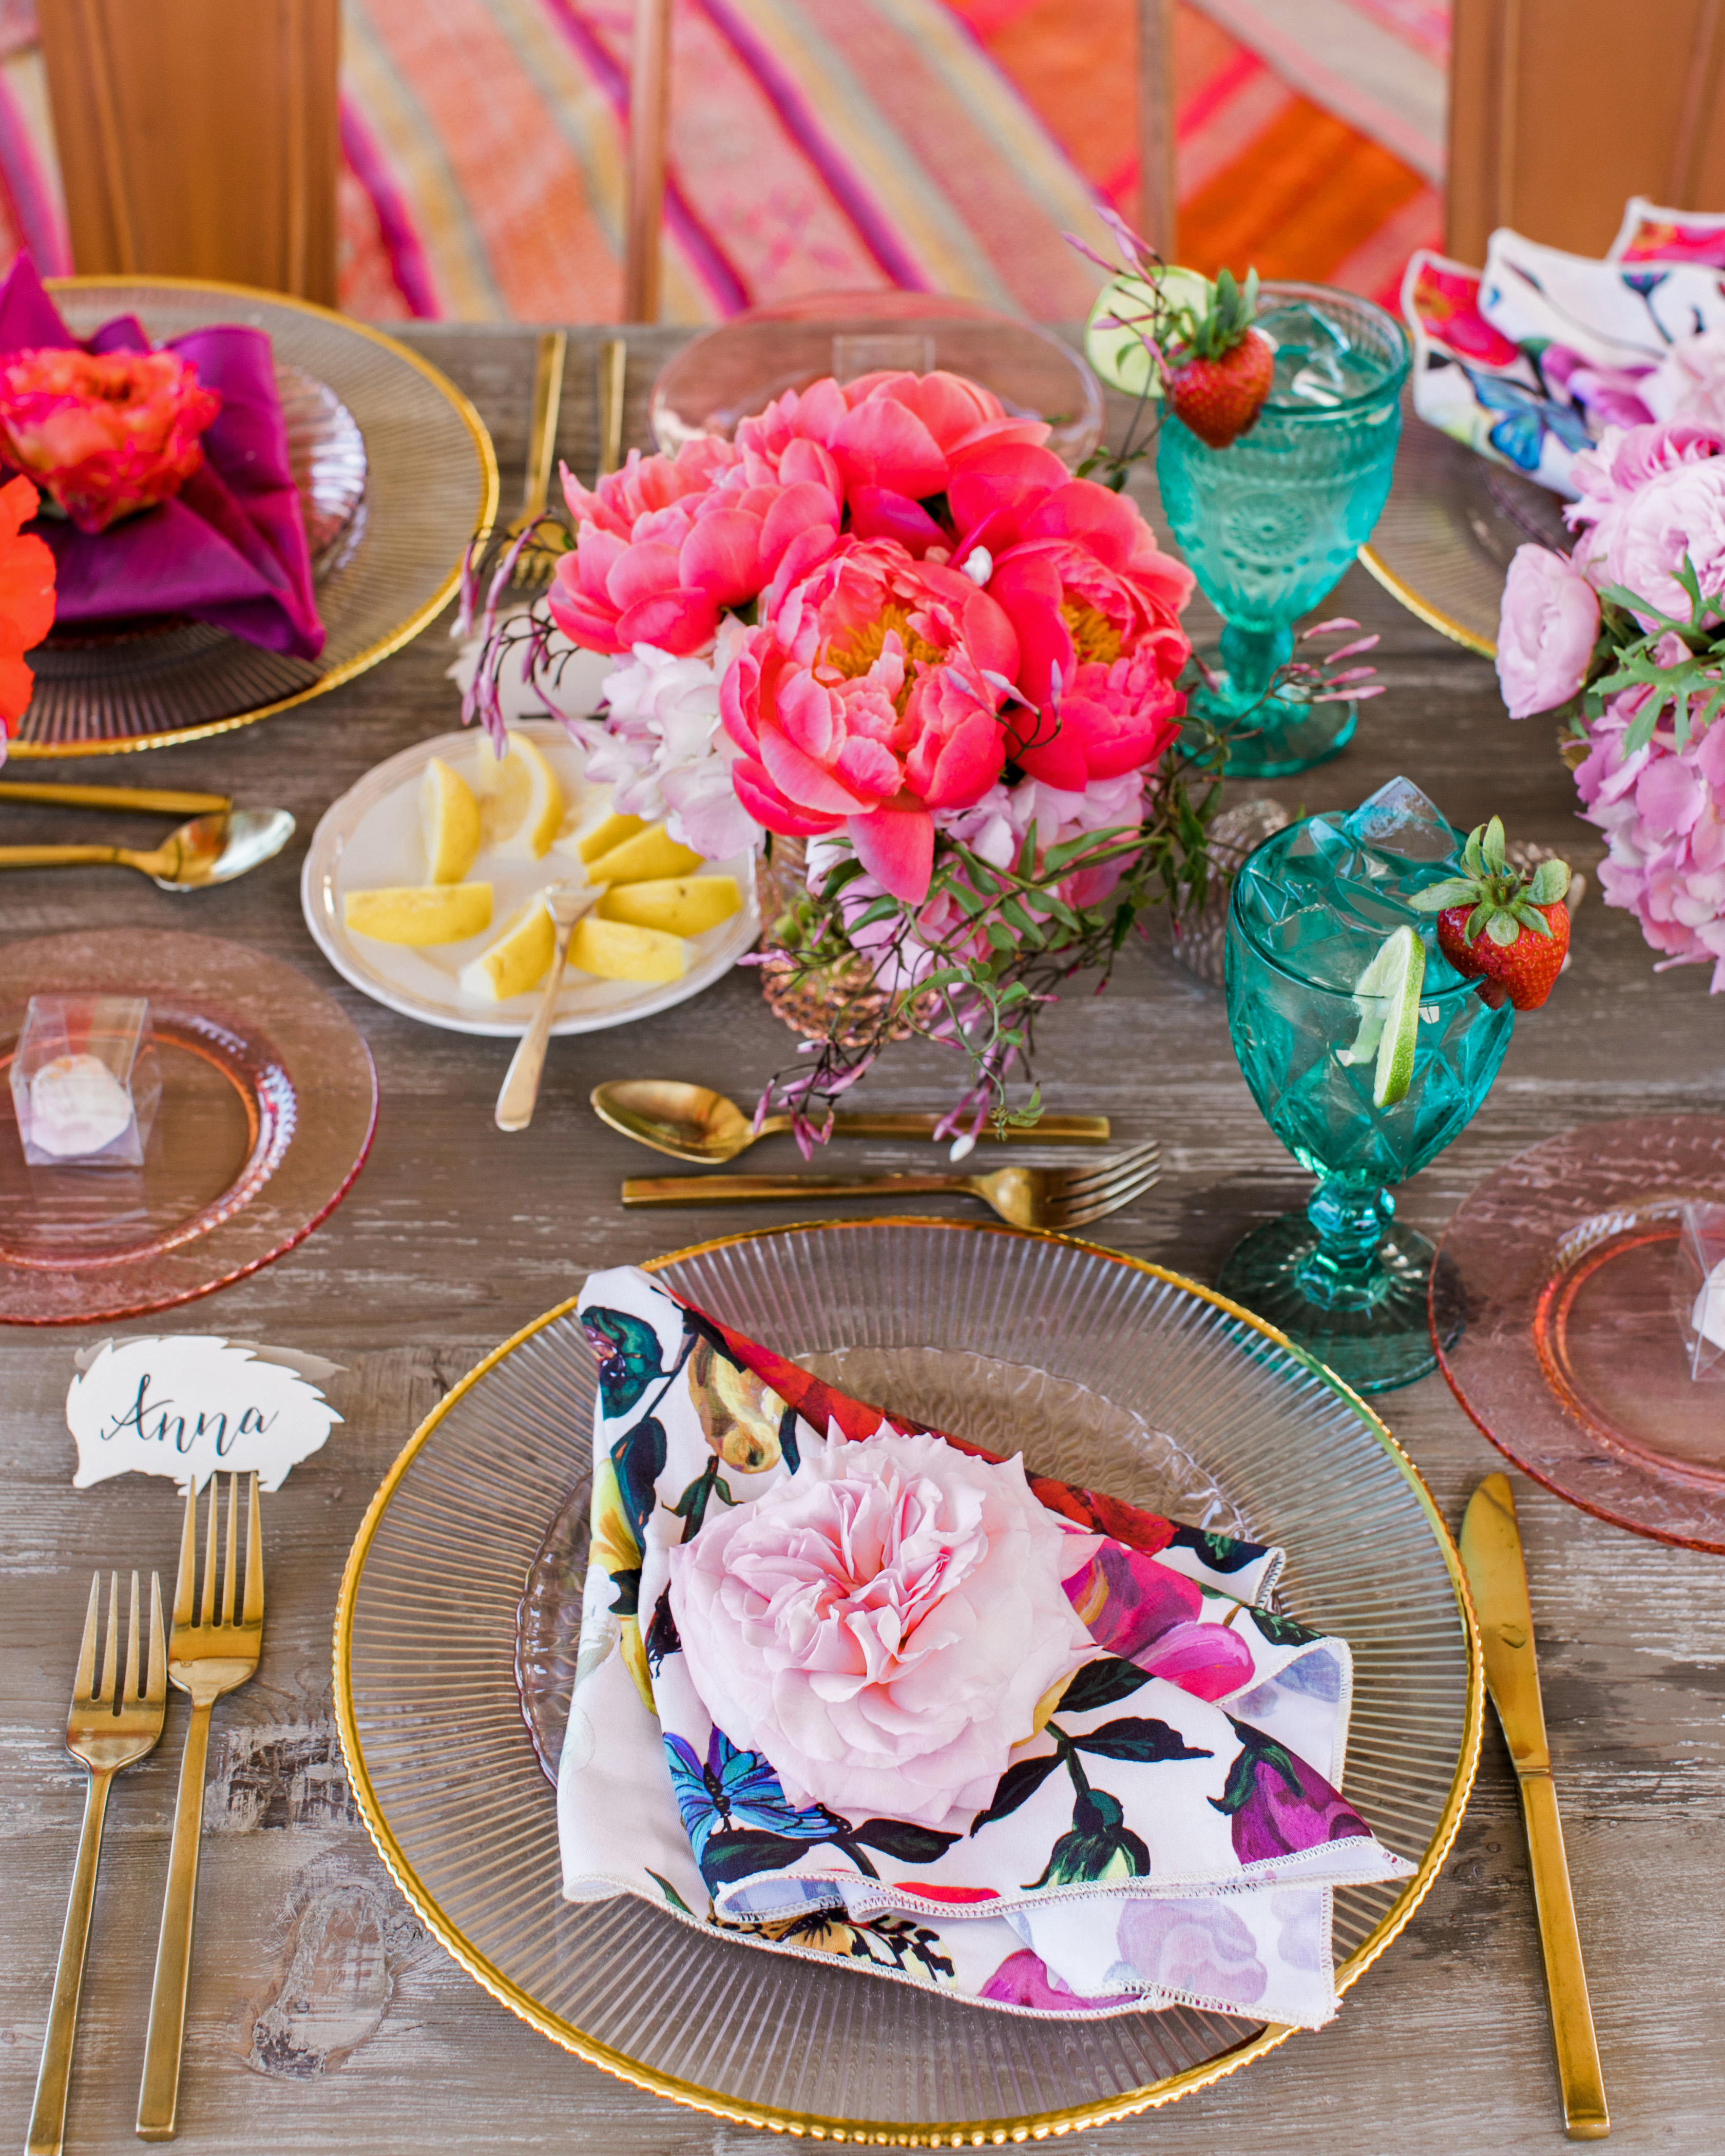 bloom buttery floral covered napkins